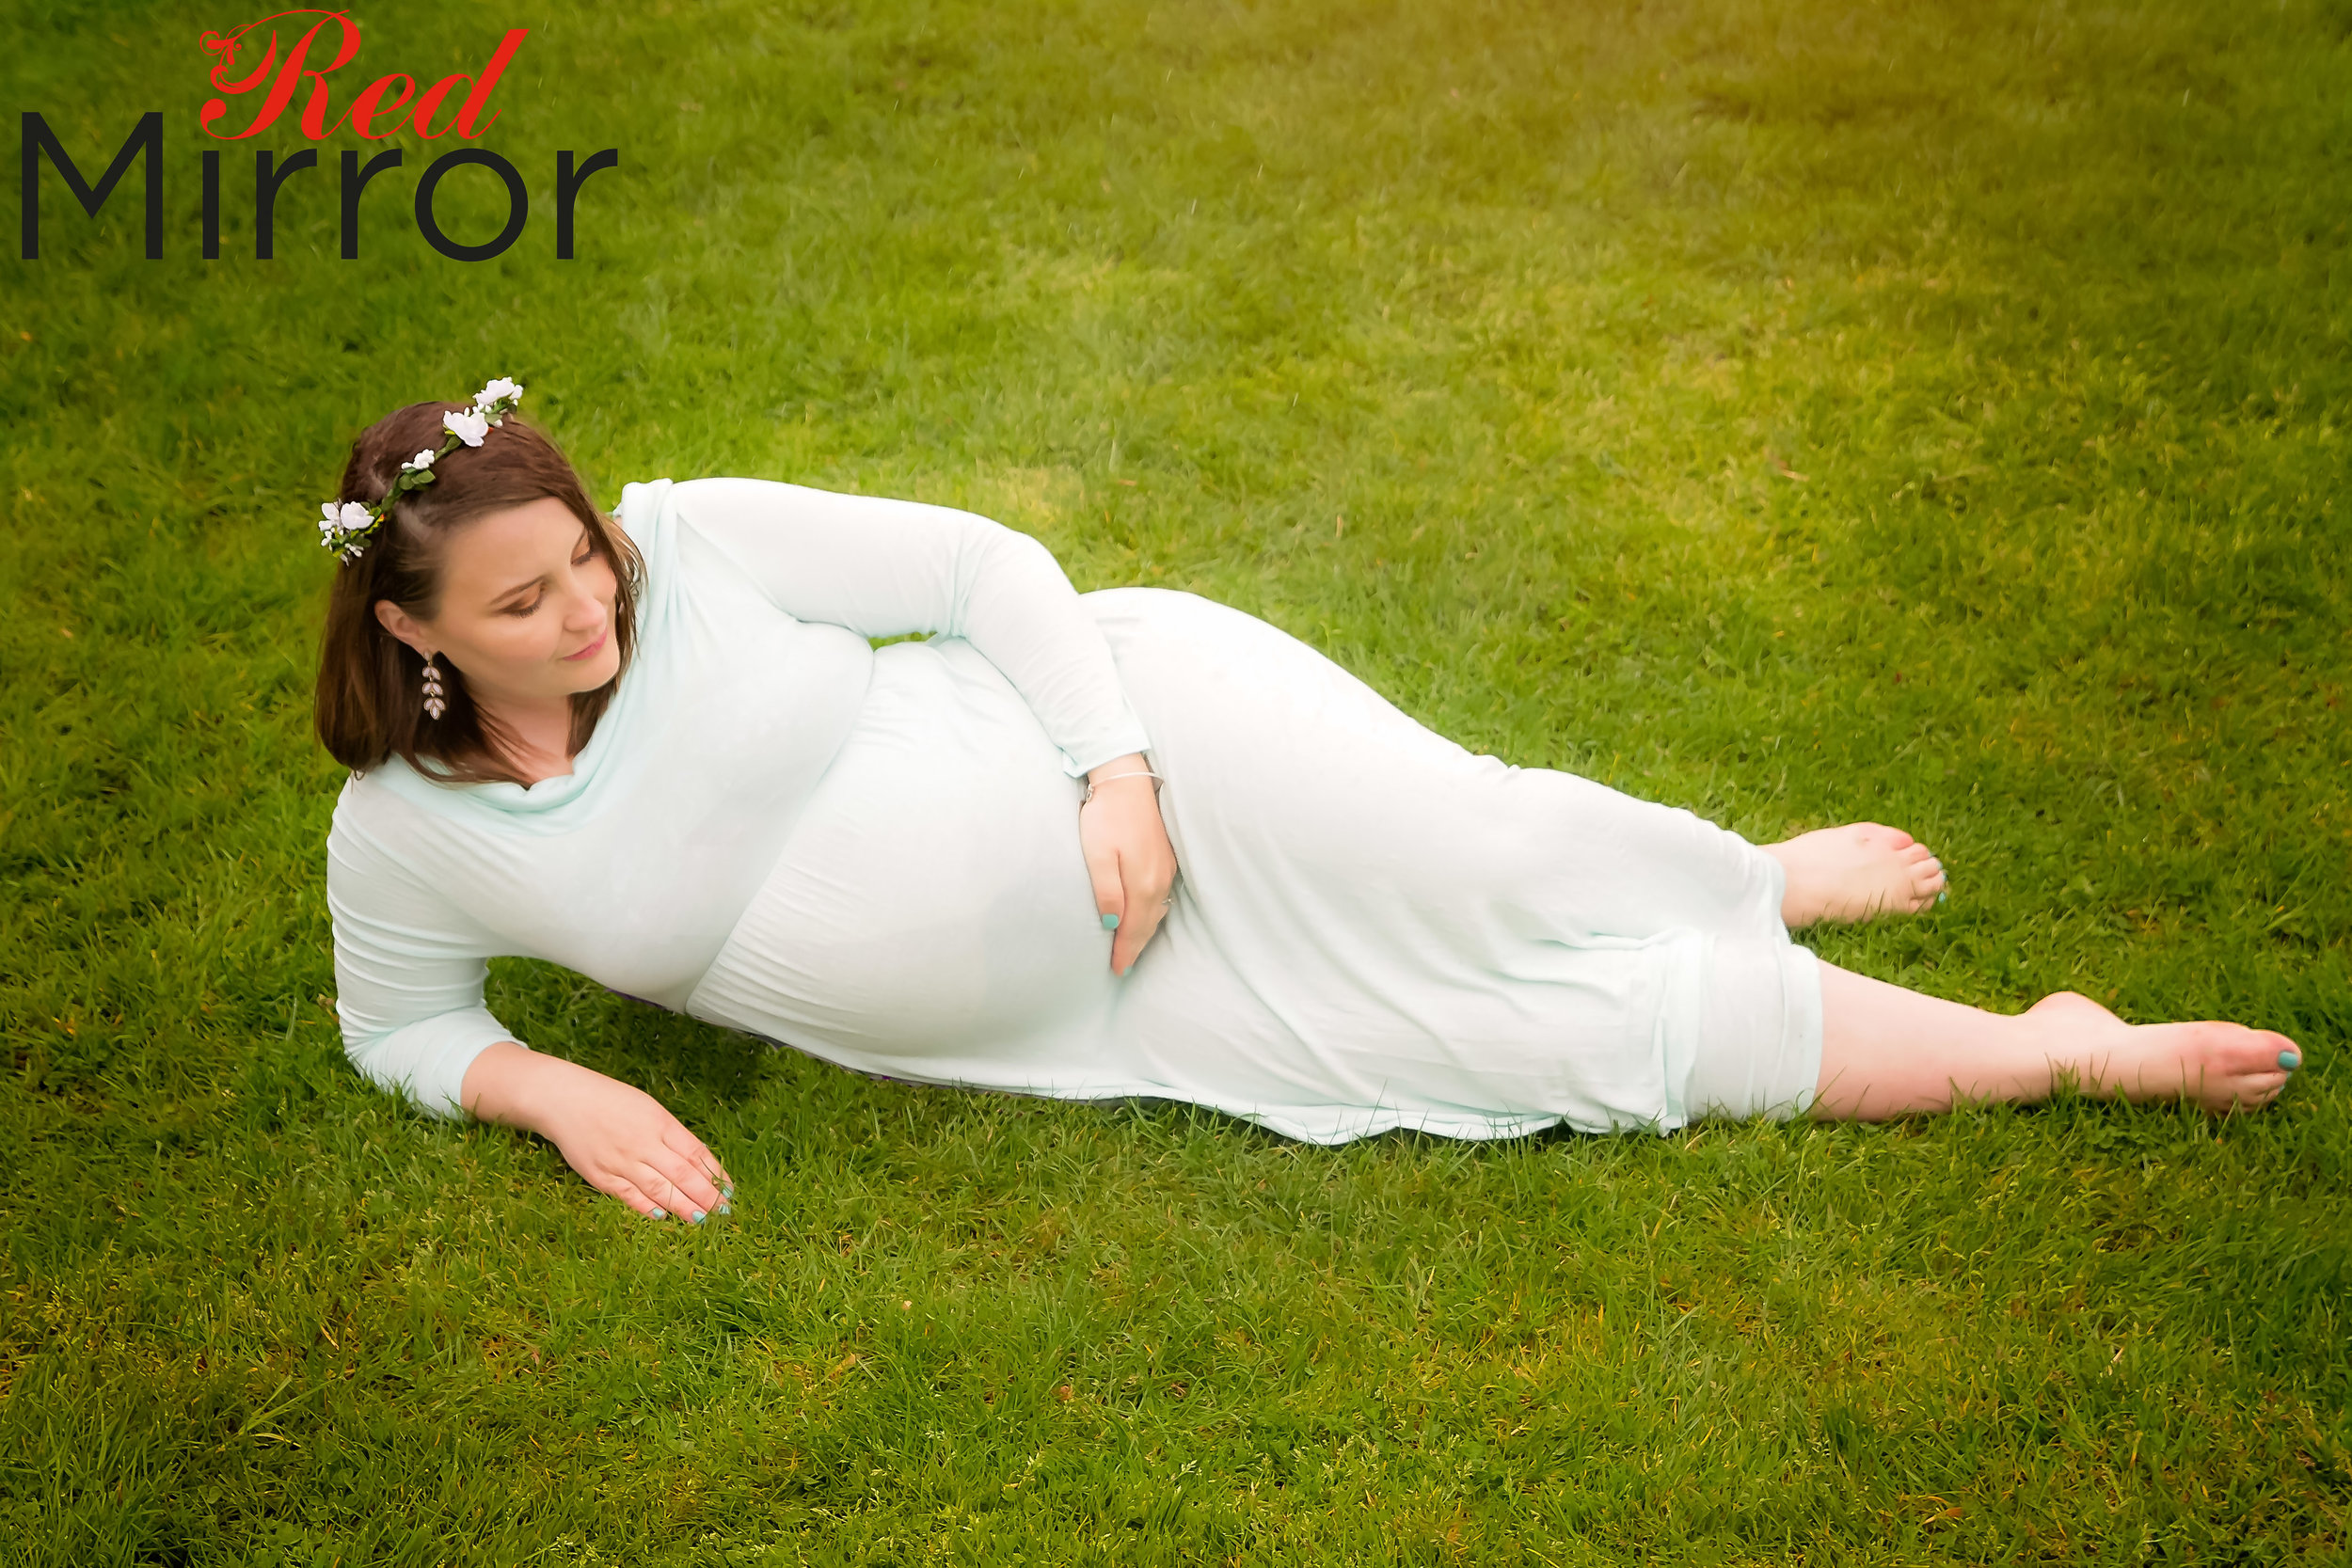 Pregnant woman laying on the grass in a mint color ddress